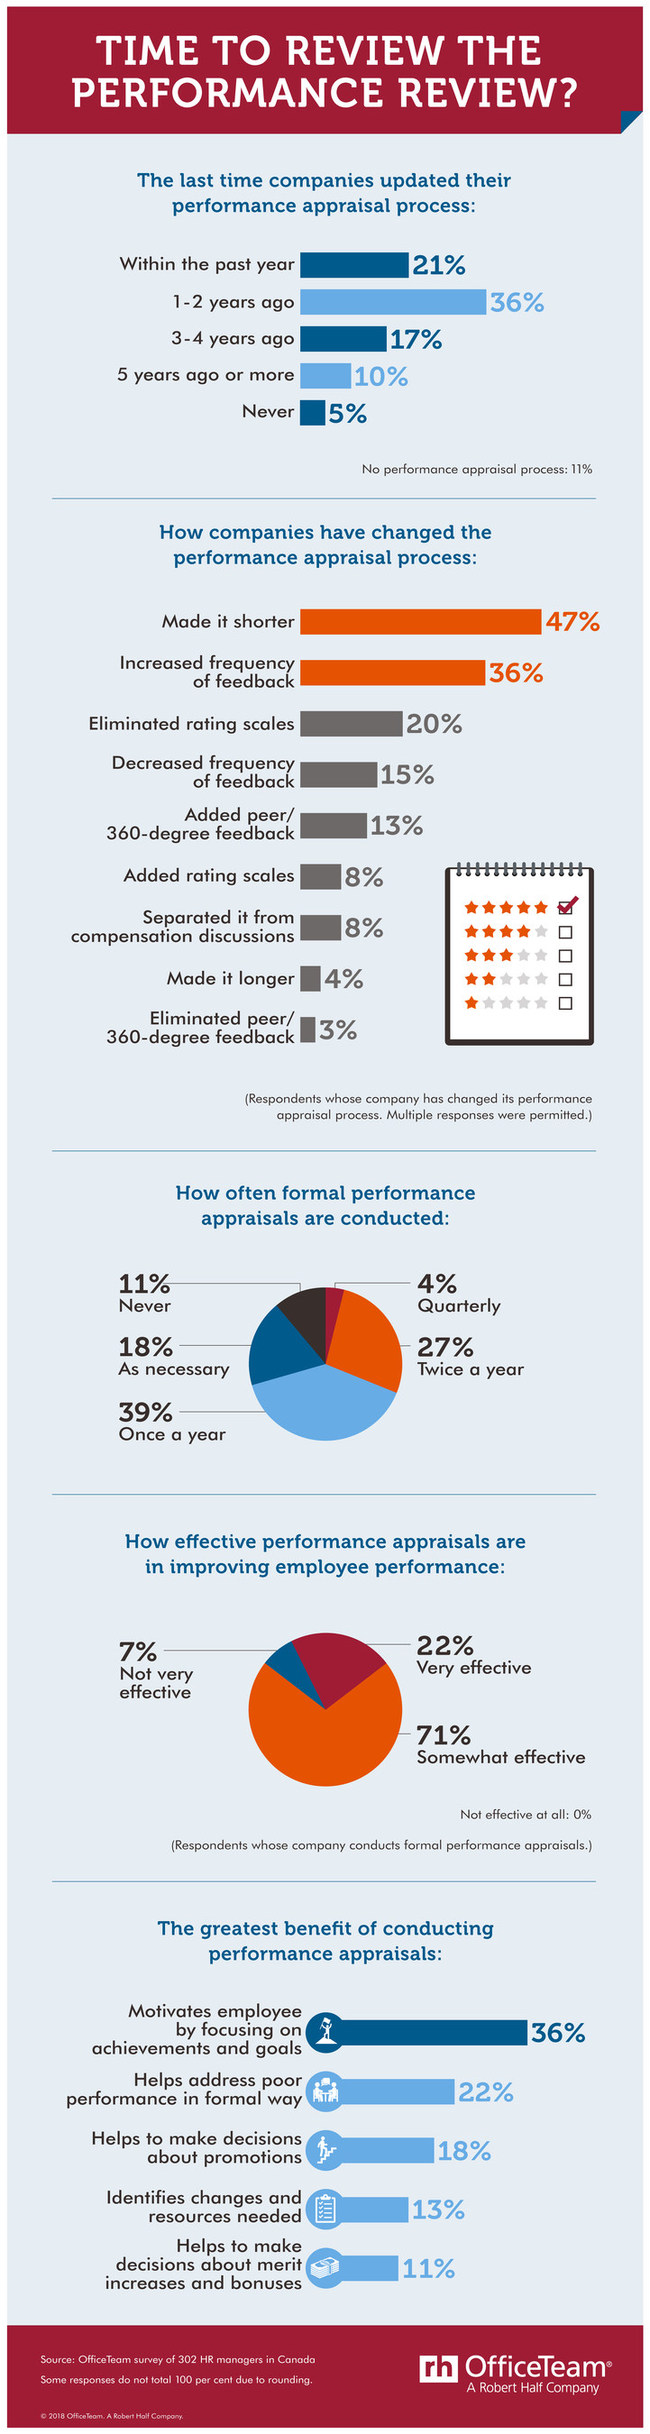 Performance reviews are evolving (CNW Group/OfficeTeam)